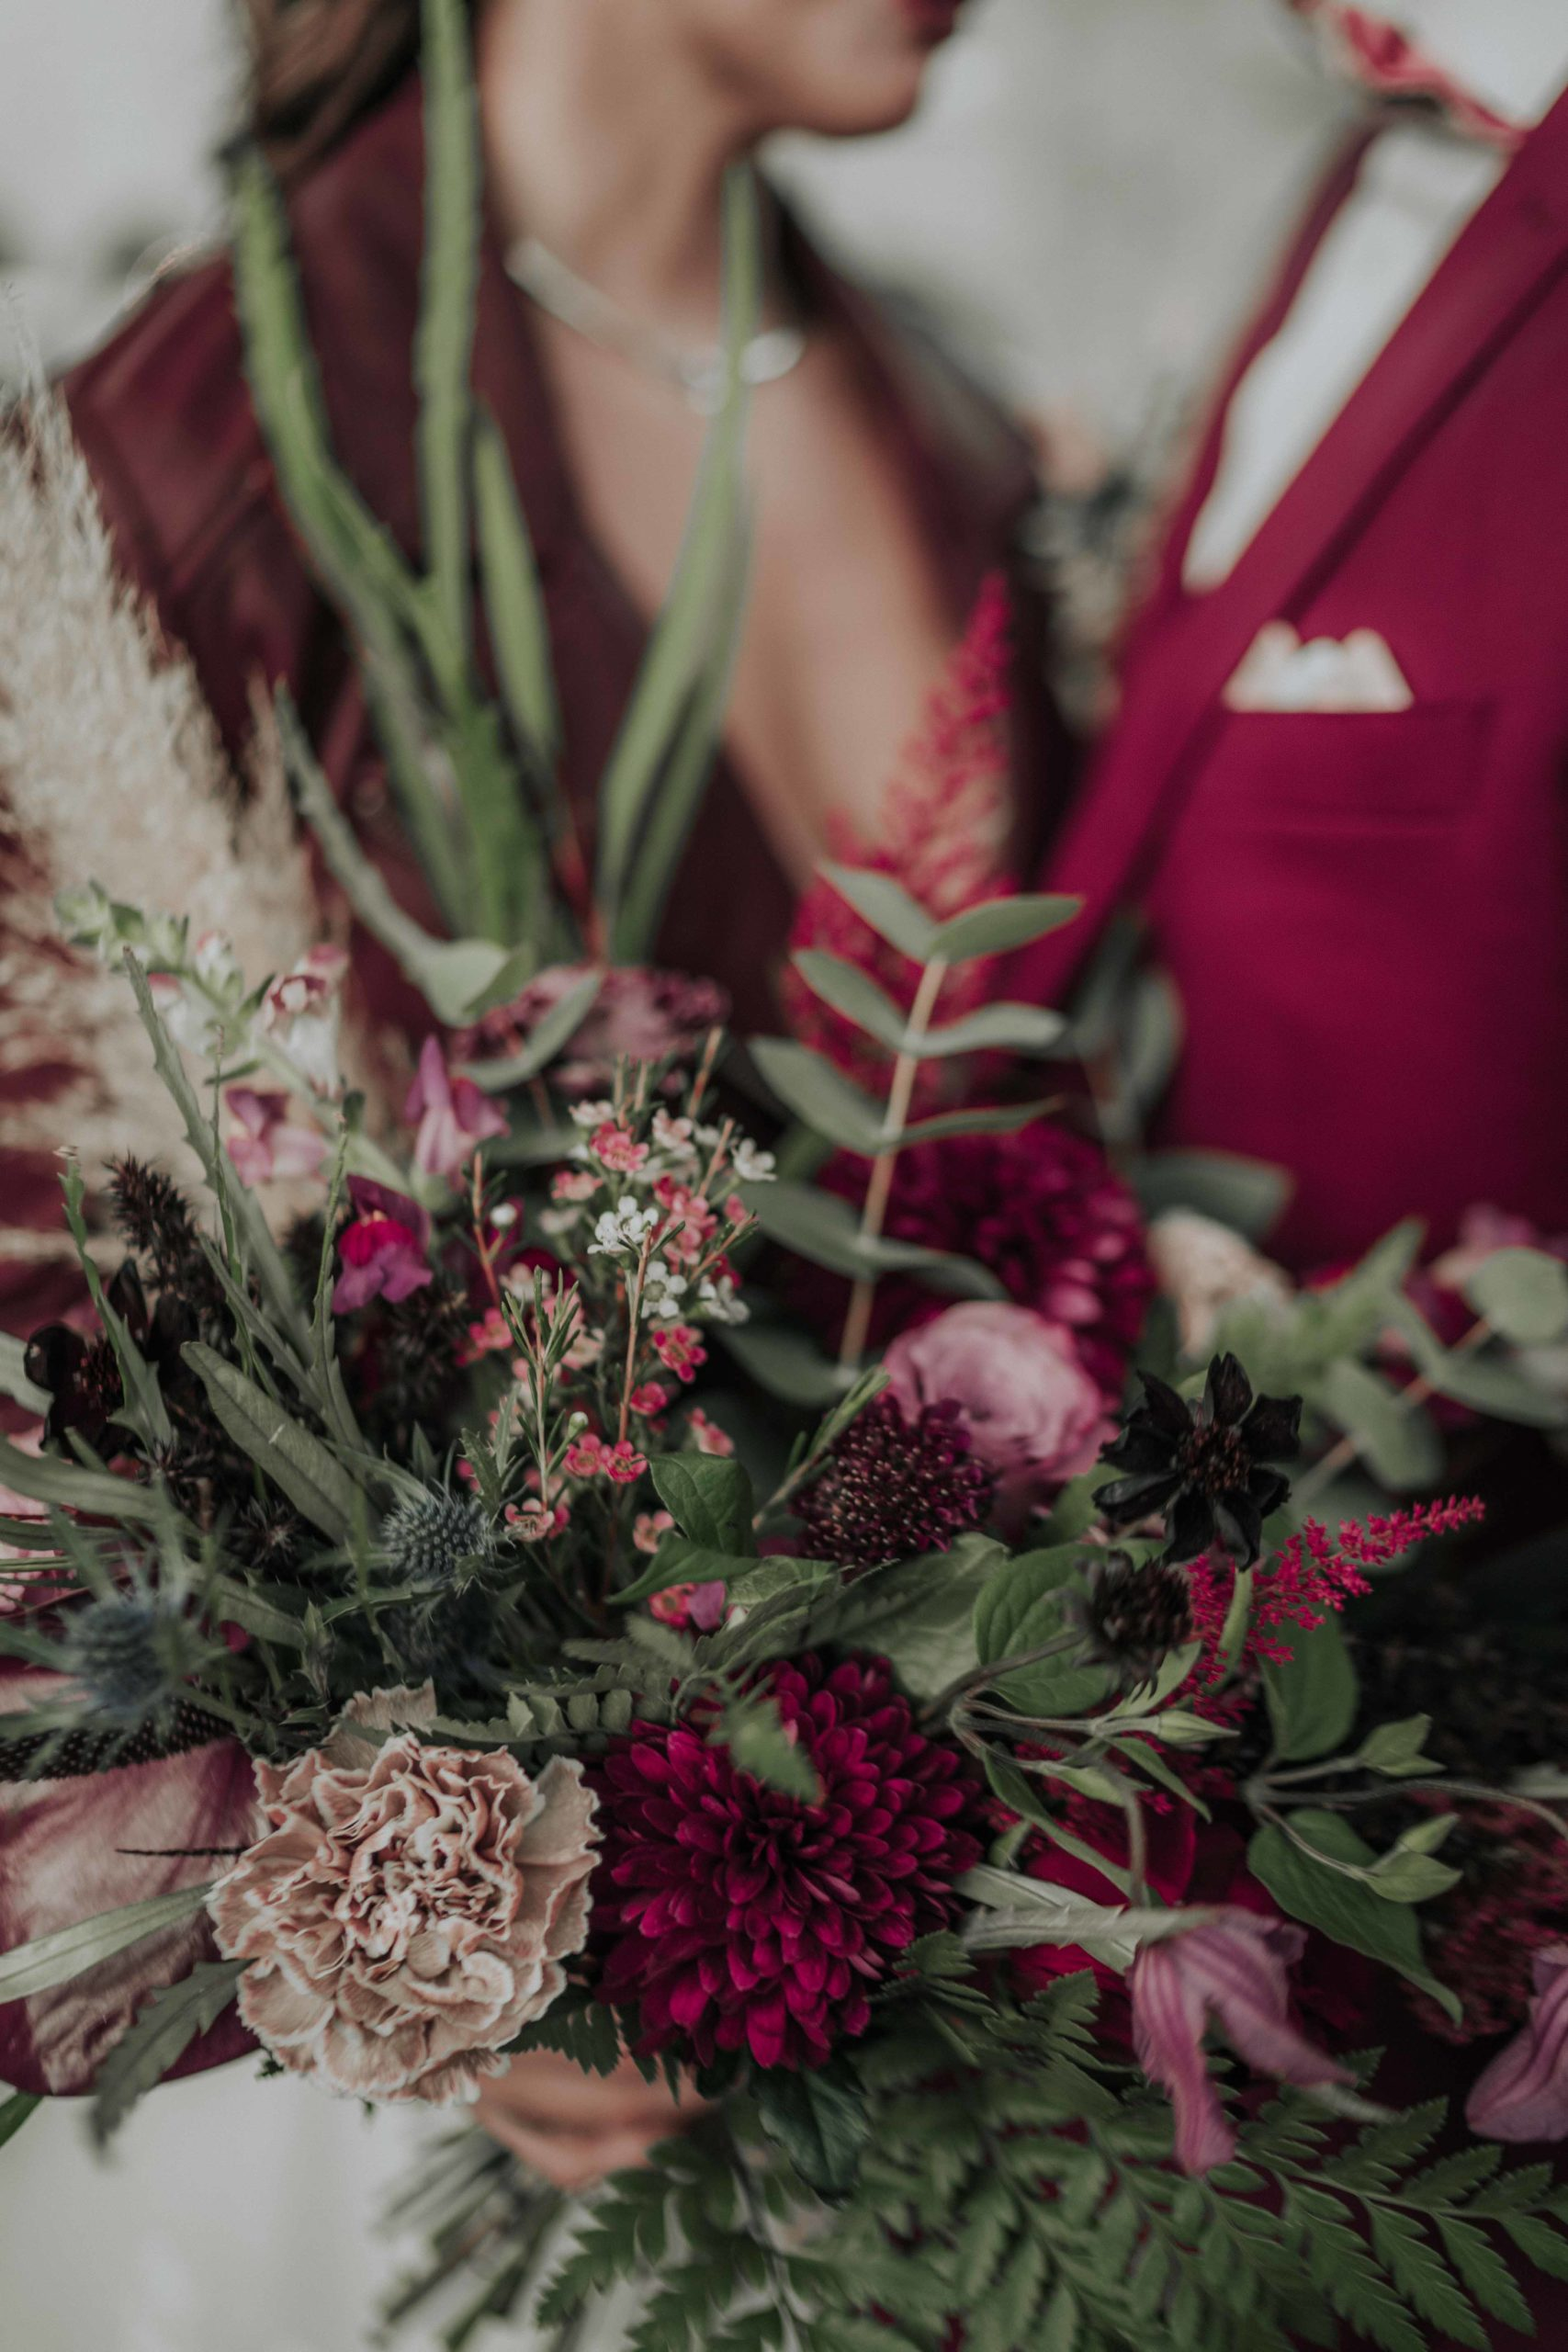 FOREVER_FANNY_MYARD_PHOTOGRAPHY_LN_MARIAGE-528-1